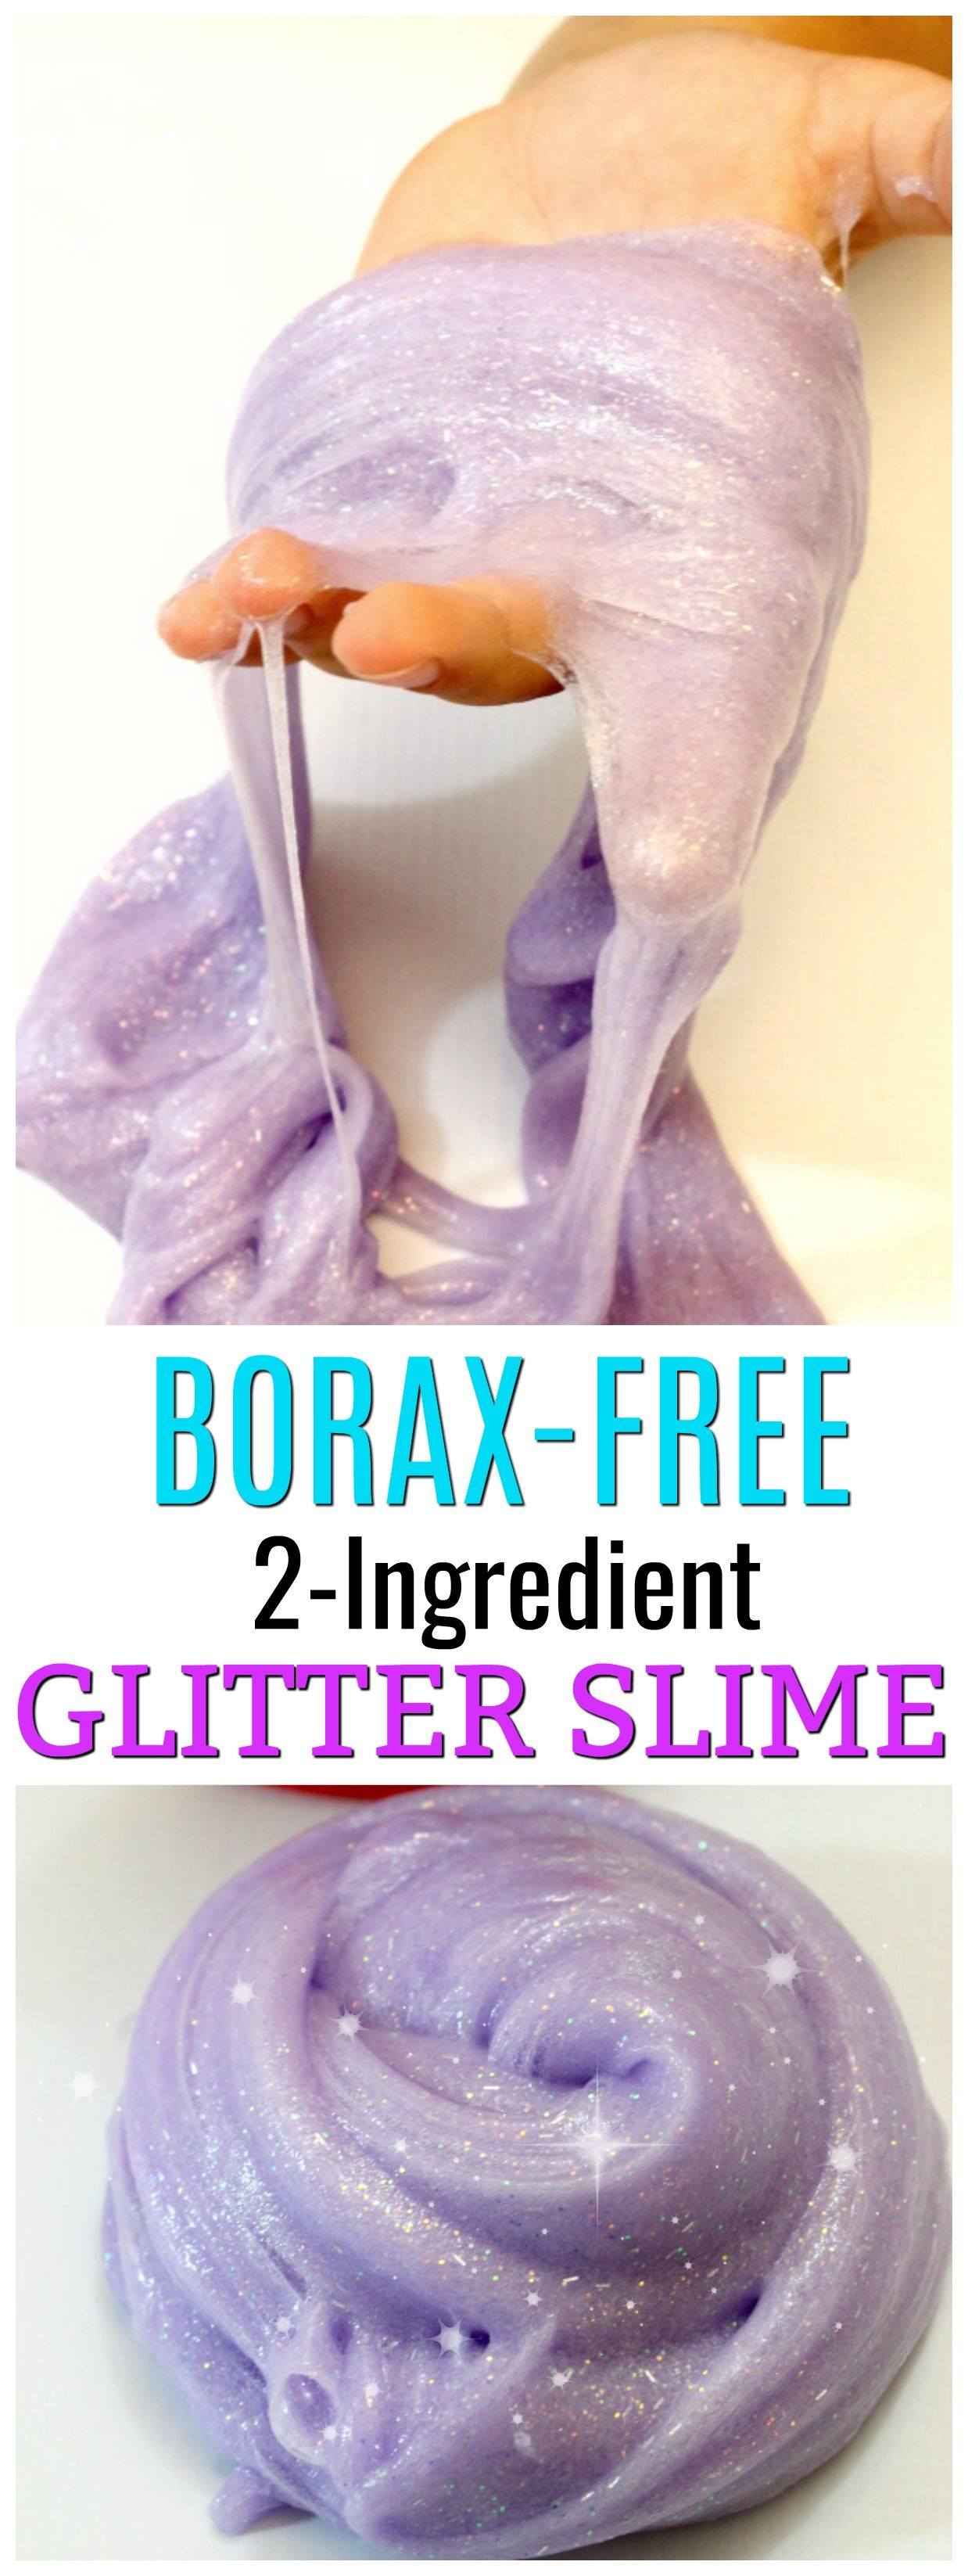 Learn To Make Glitter Slime With Only 2 Ings This Glue Recipe